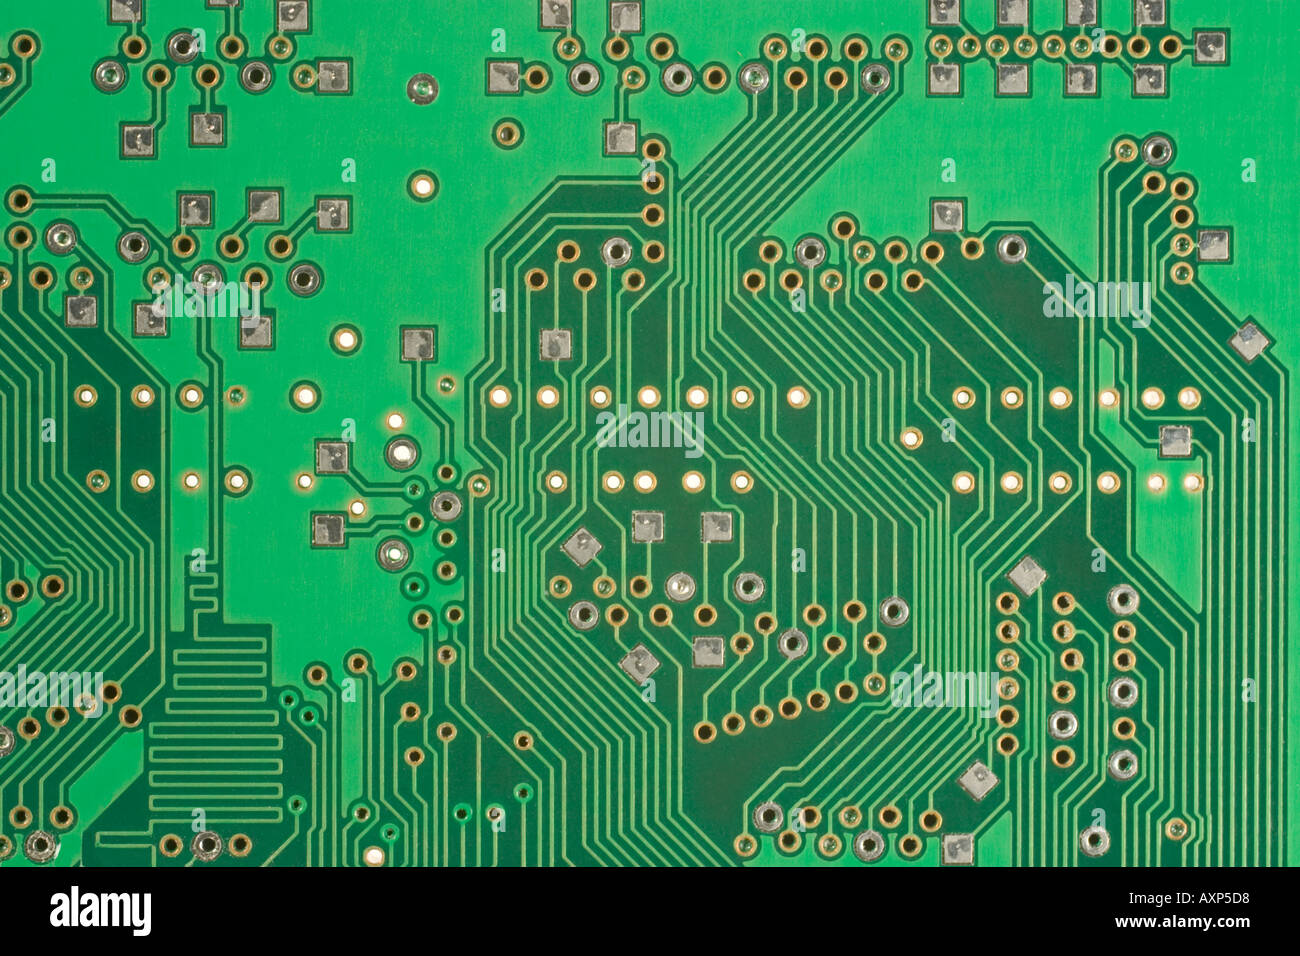 Pcb Printed Circuit Board Backside Stock Photo 3139031 Alamy